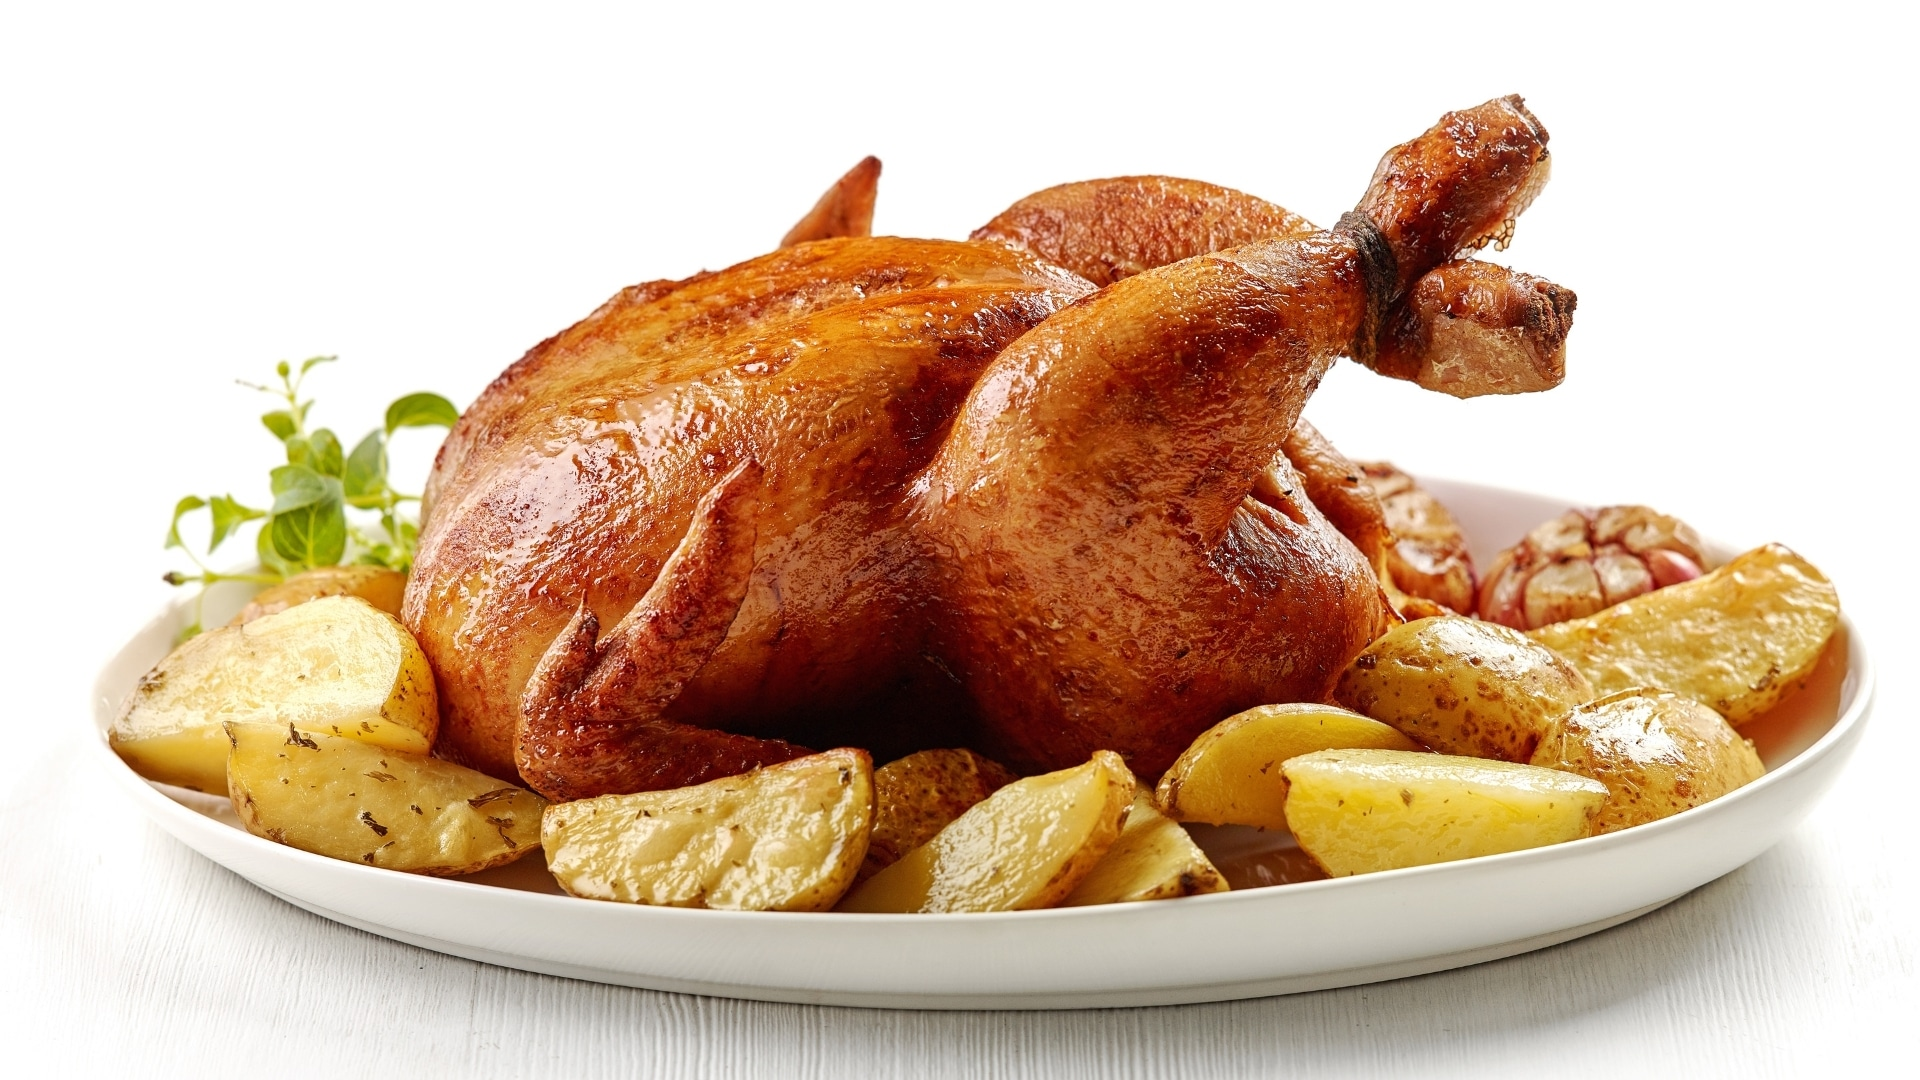 Juicy Roasted Chicken In The Oven